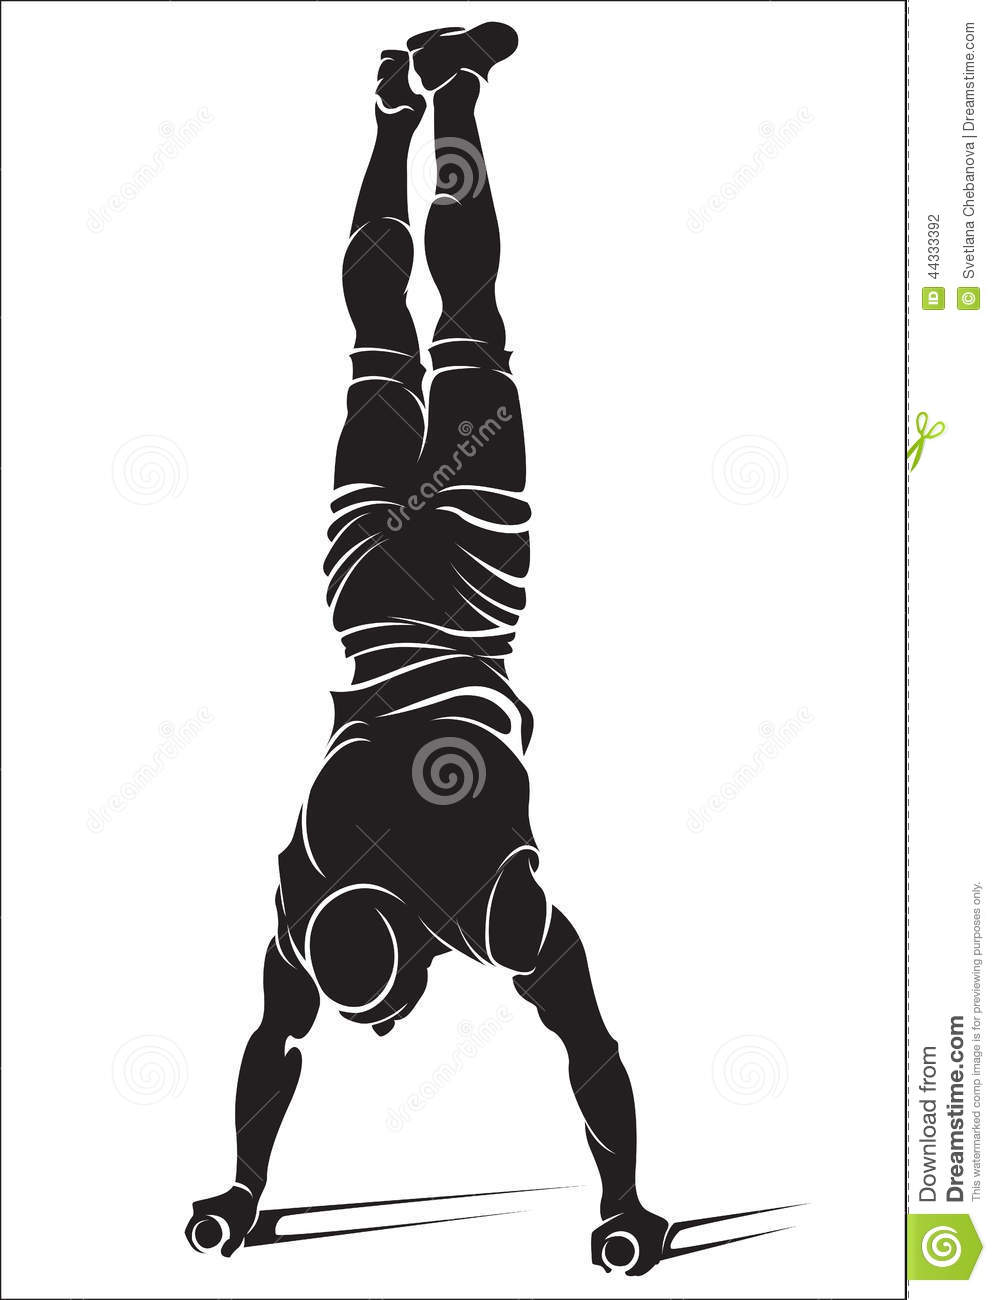 Sporty Man Doing Street Workout Exercise Handstand Stock